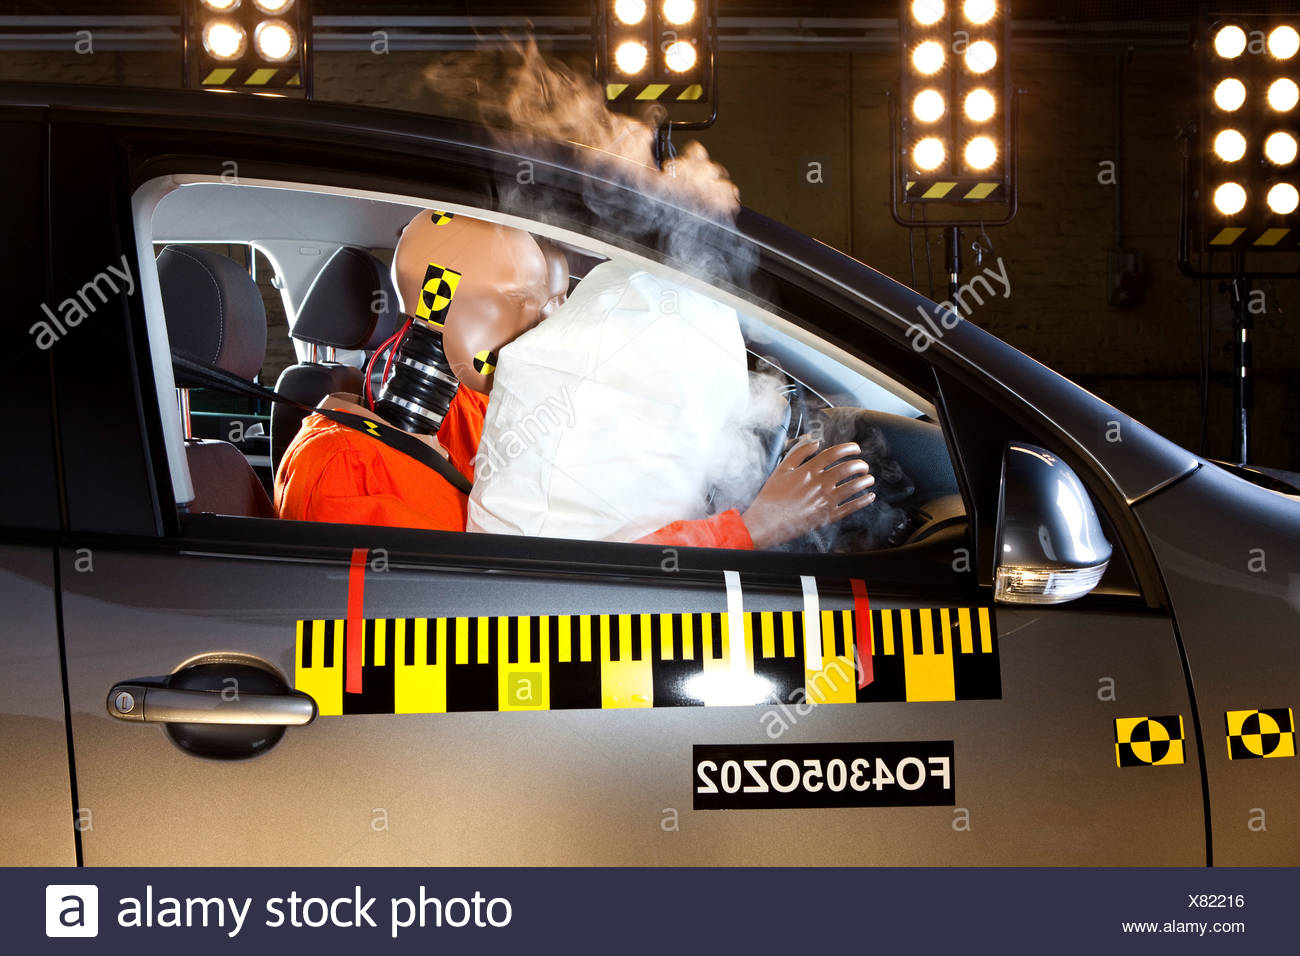 An airbag deploying during a crash test - Stock Image